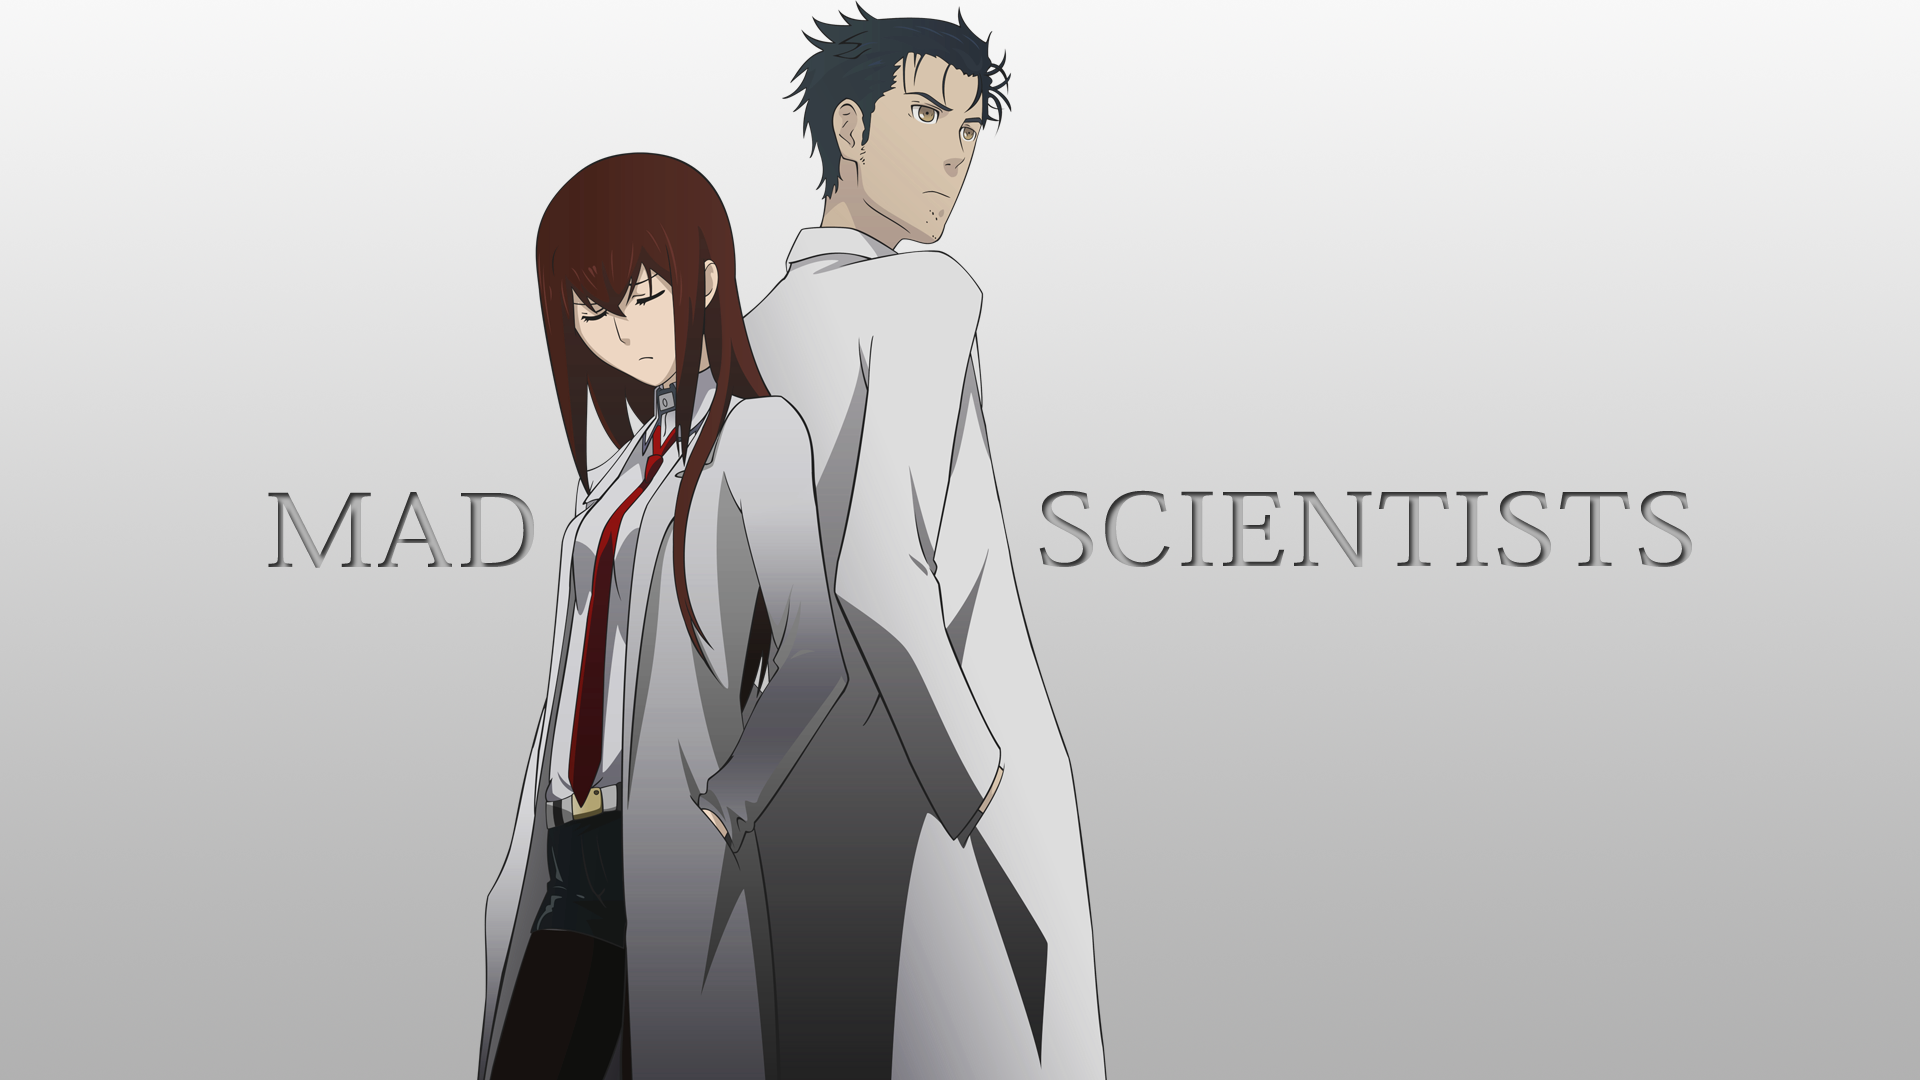 Steins;Gate HD Wallpaper for PC